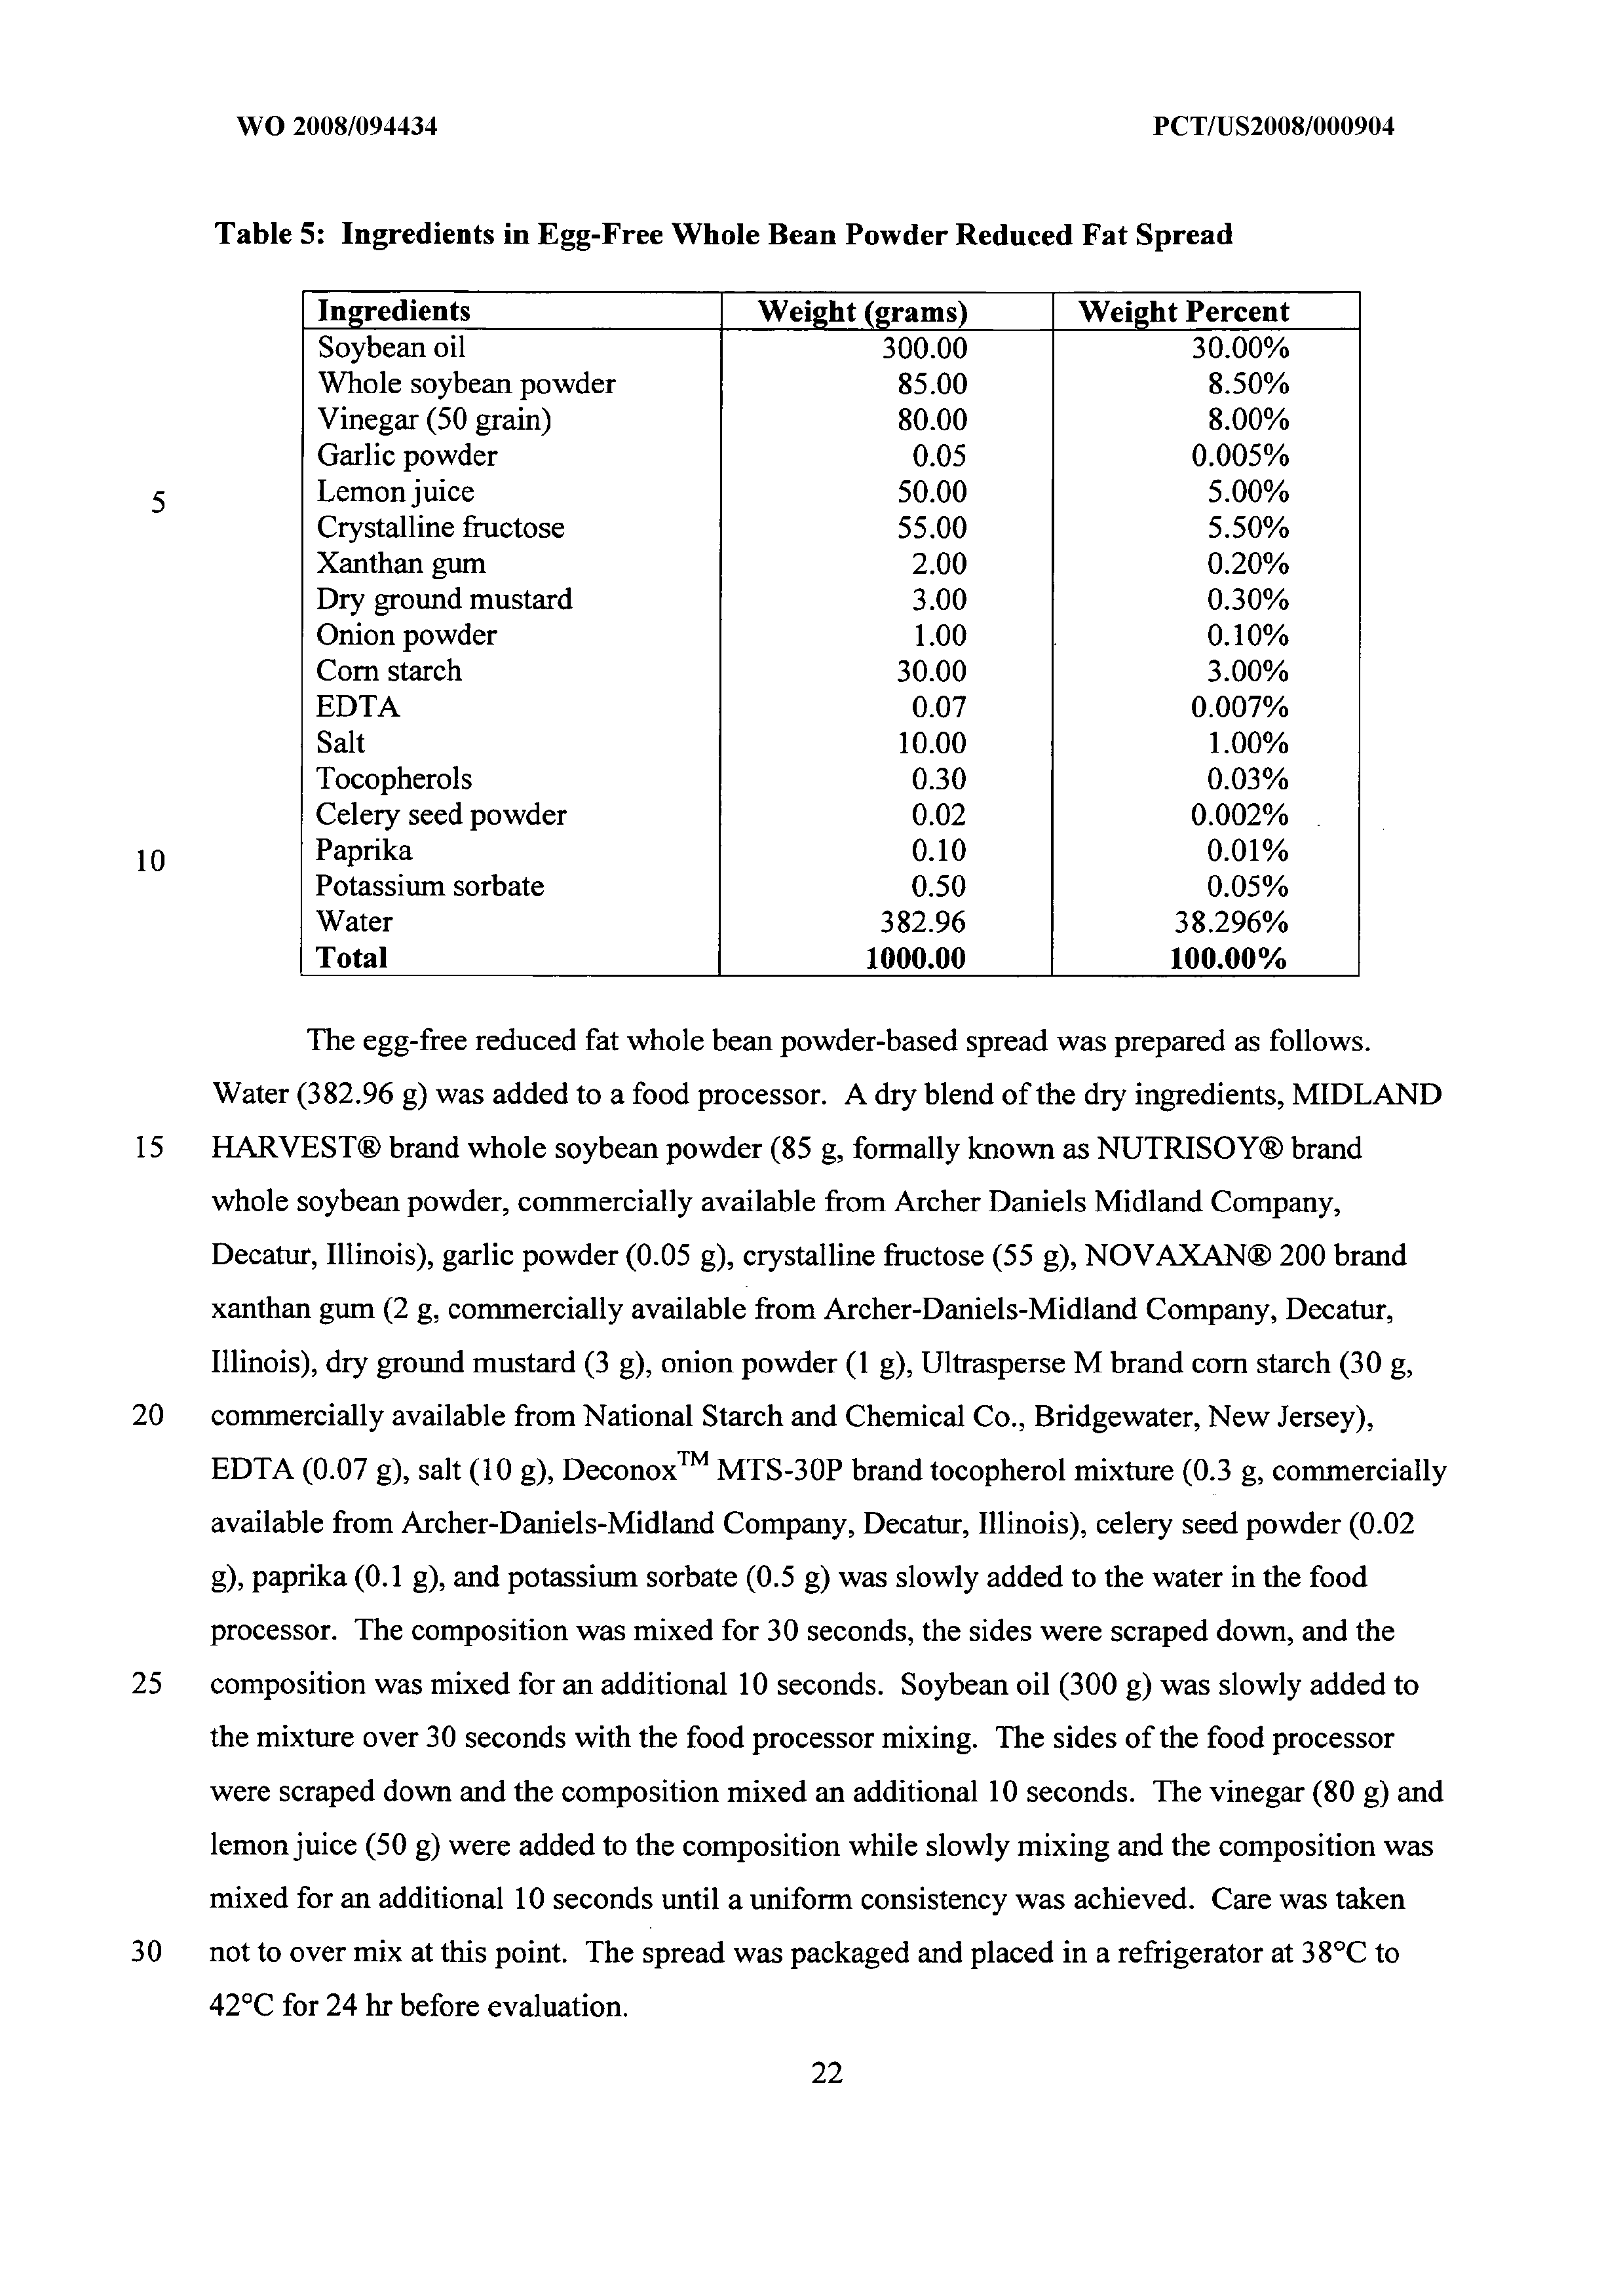 WO 2008/094434 A2 - Compositions Comprising Wheat Protein